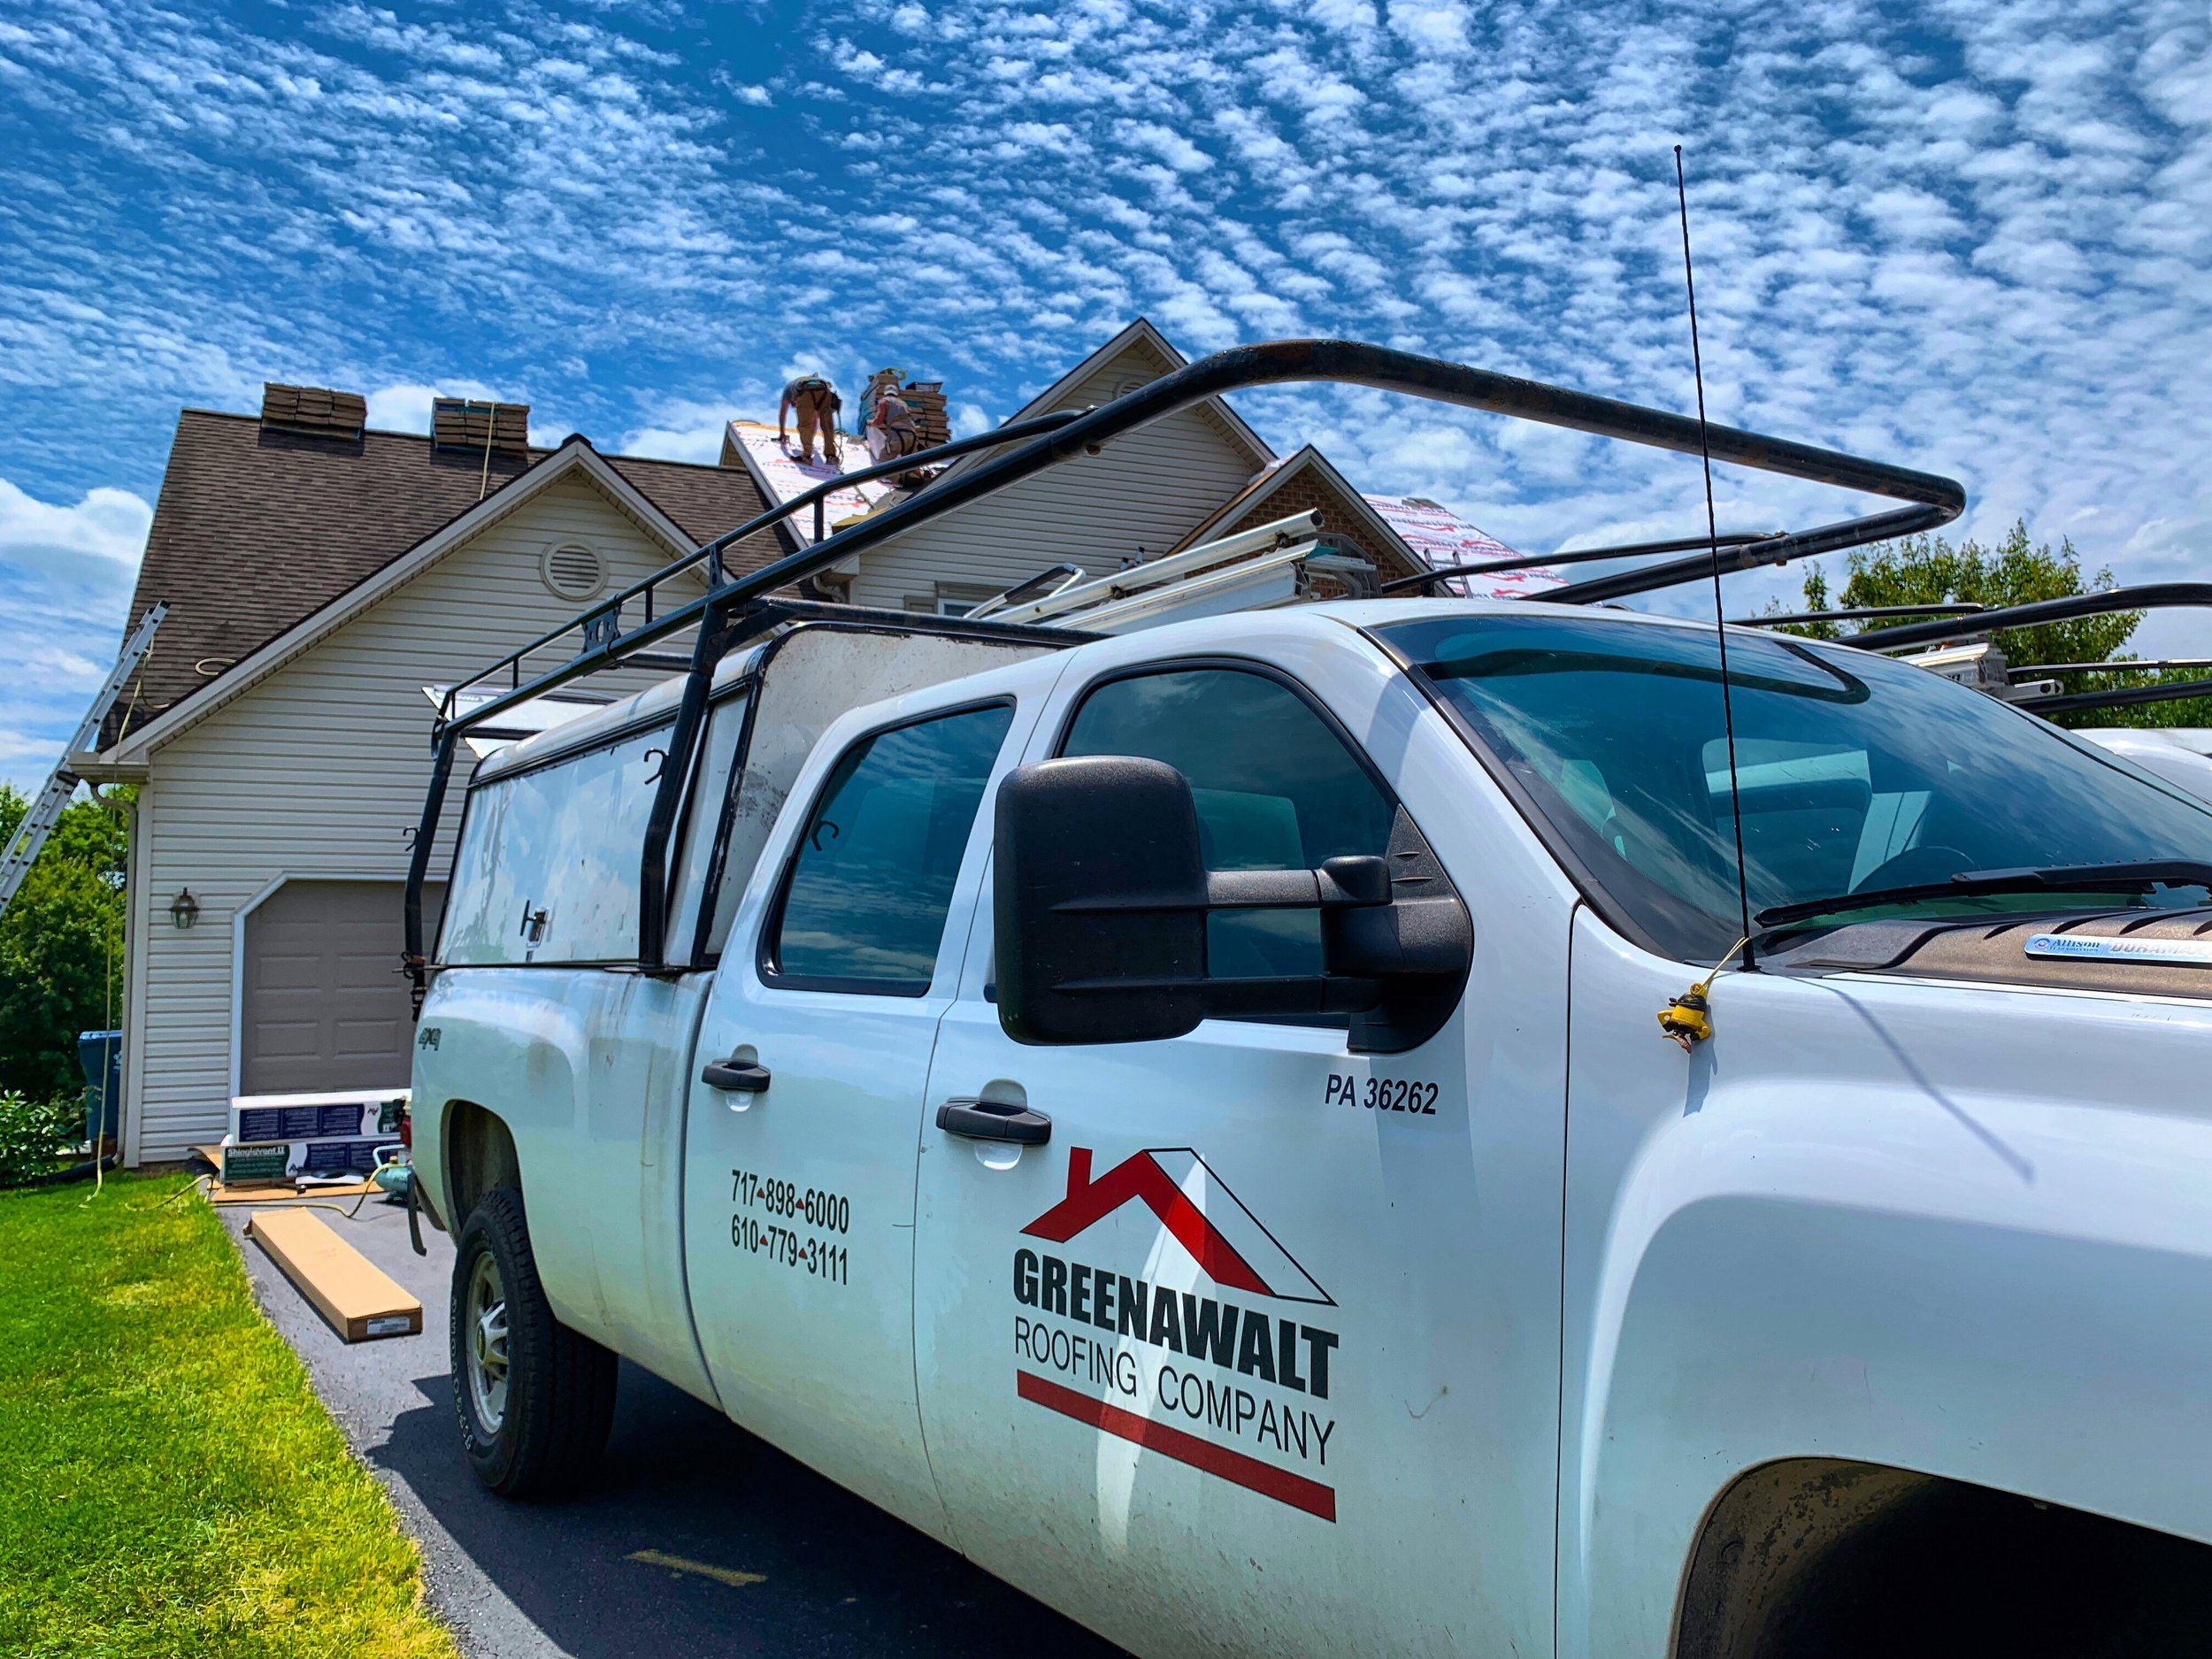 Greenawalt-Roofing-Company-Truck-at-work.JPG